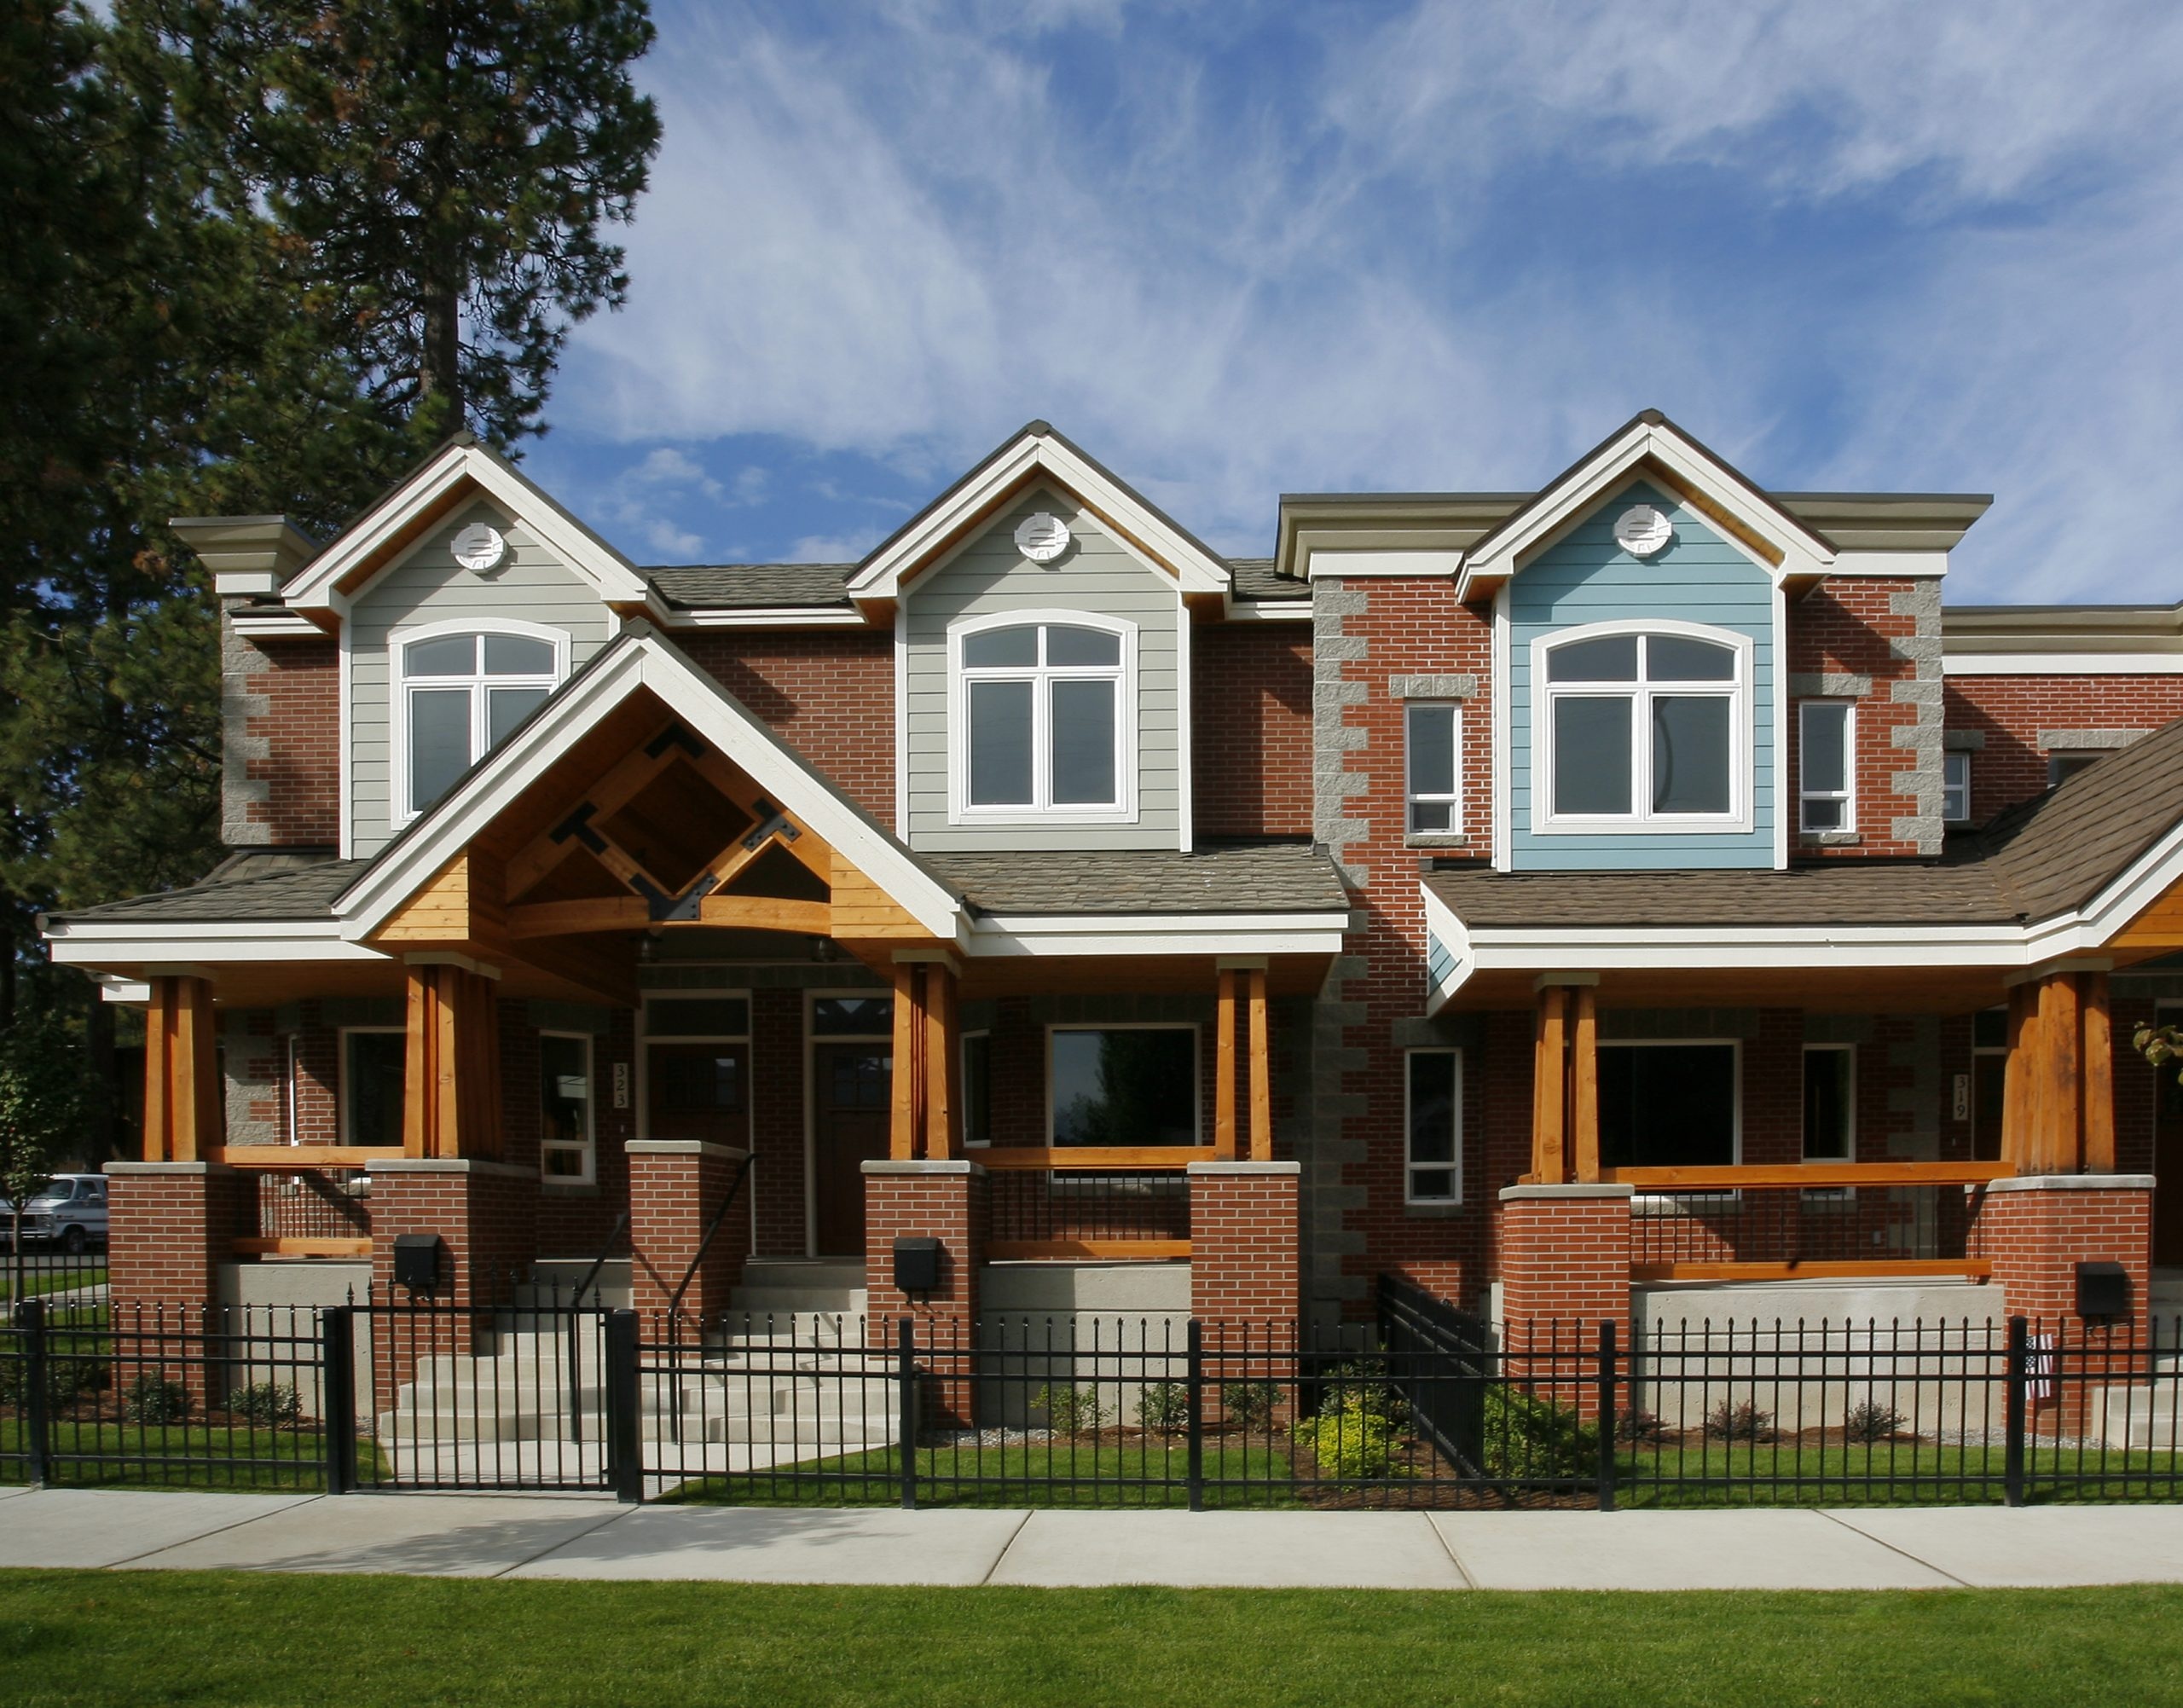 Ice Plant, located in downtown Coeur d'Alene, Idaho includes street front porches and tree lined streets to provide a sense of community and enhance the existing urban neighborhood fabric of the surrounding area.